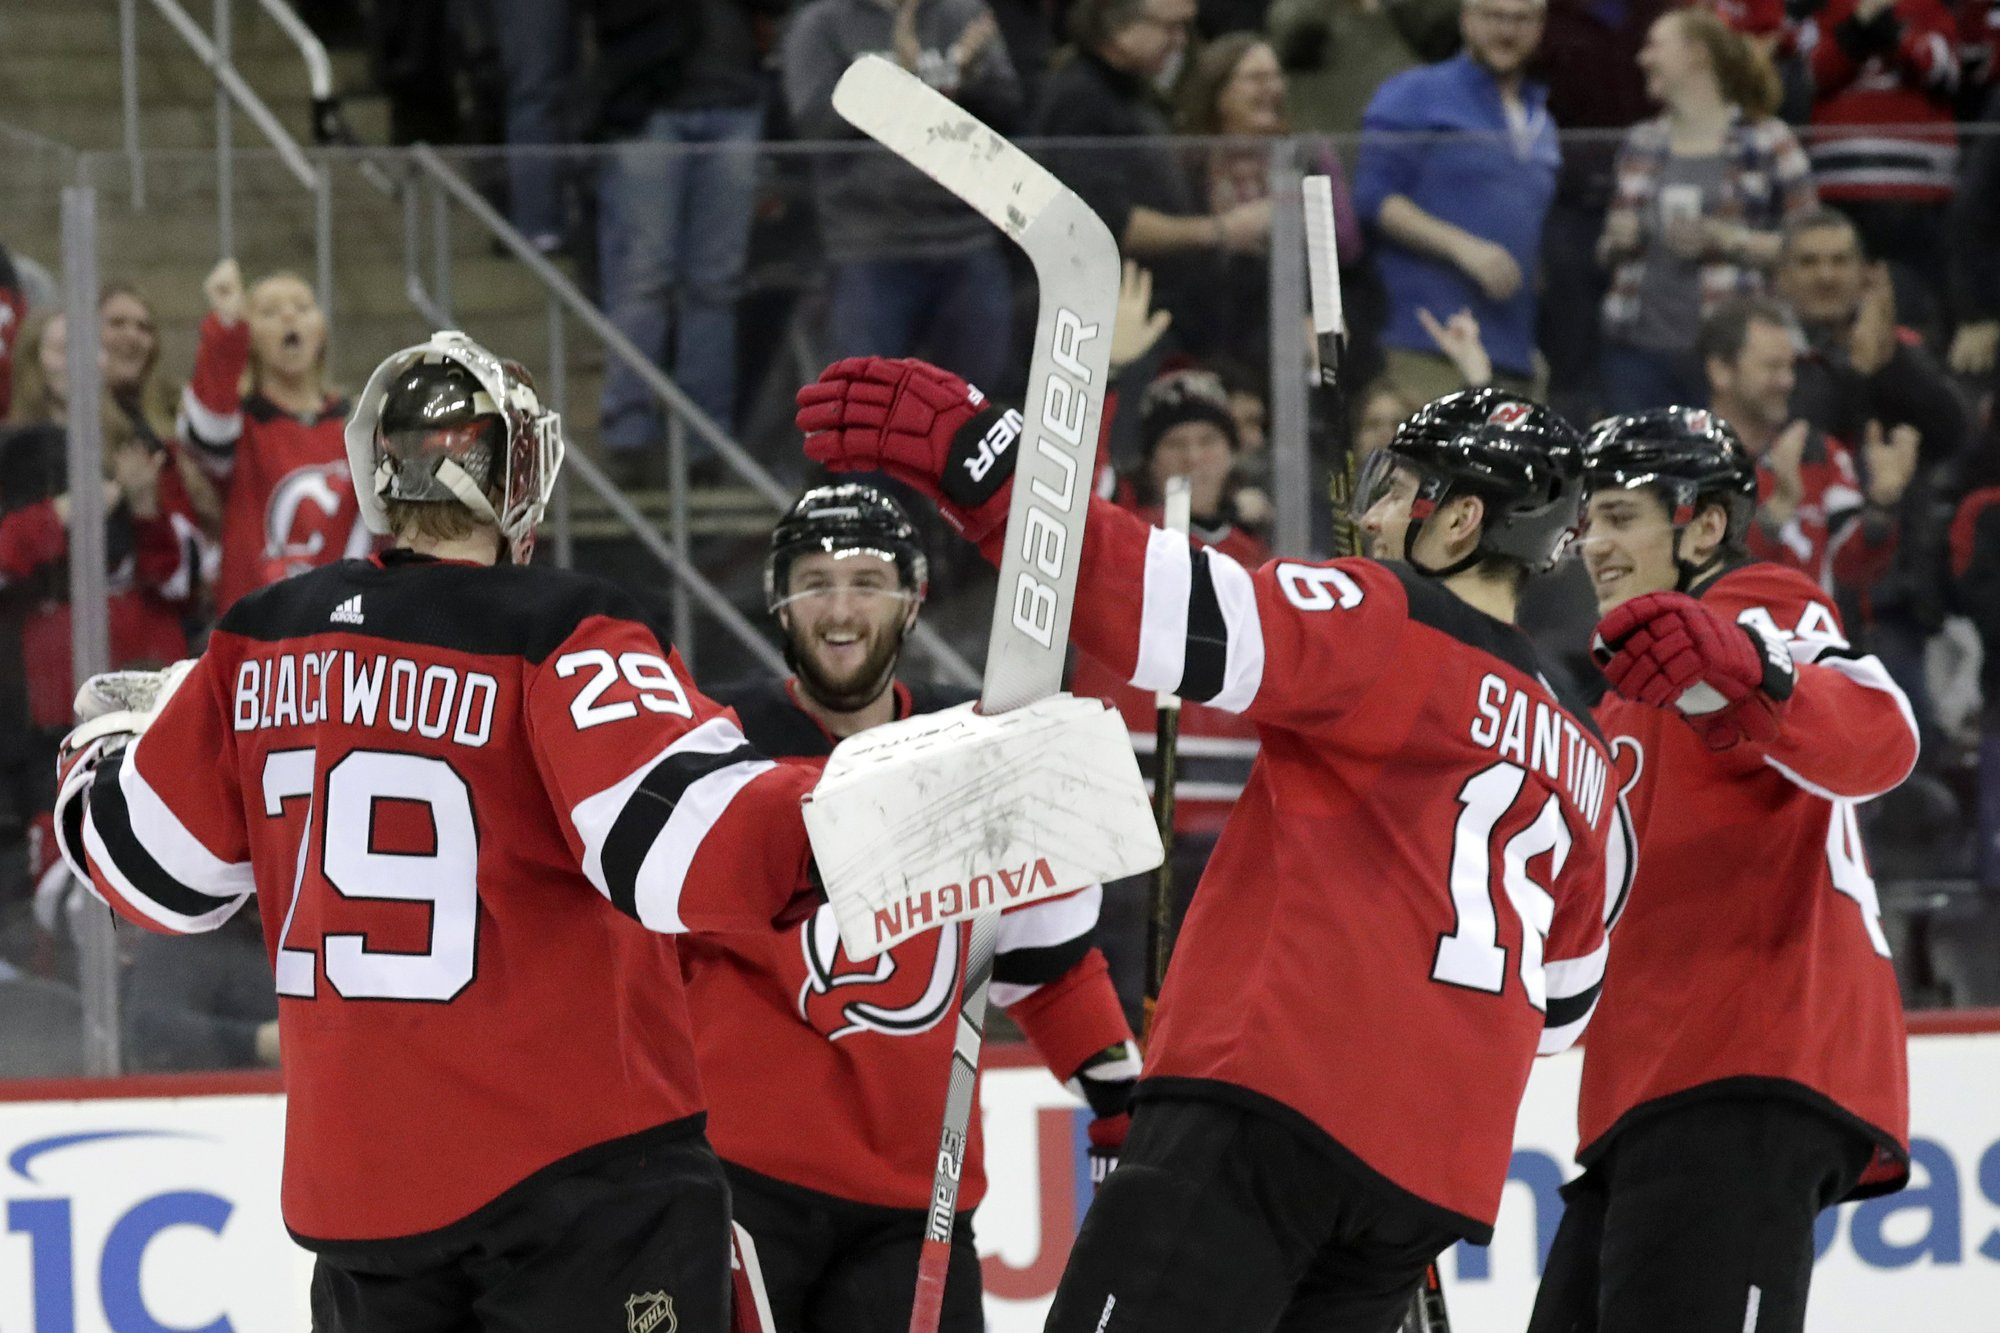 Devils win in shootout for Arizona's 4th straight loss